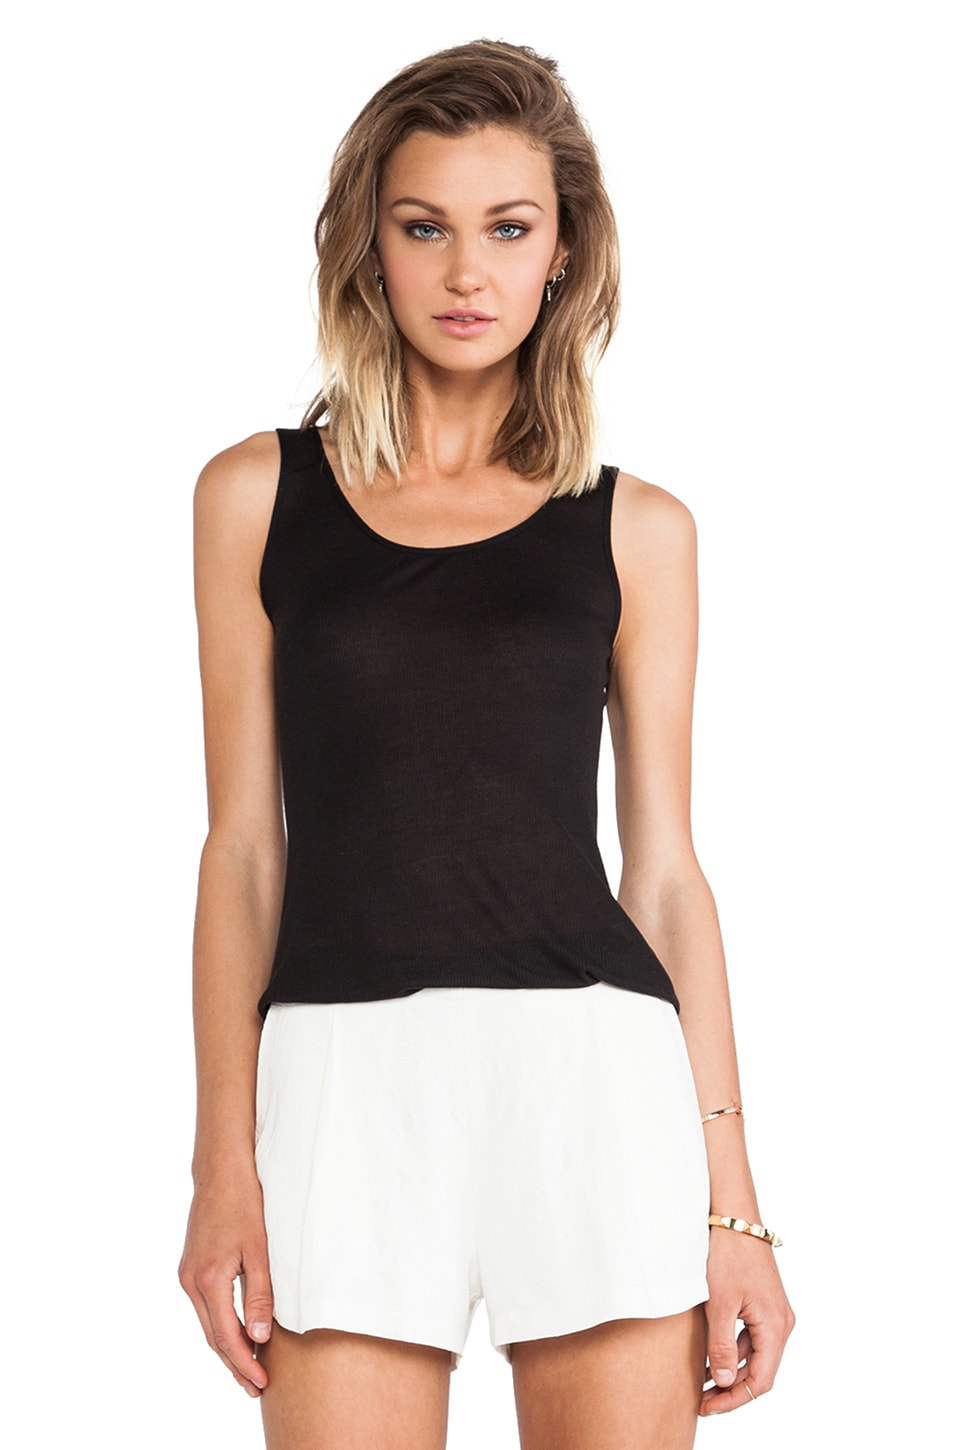 David Michael Girl Tank in Black